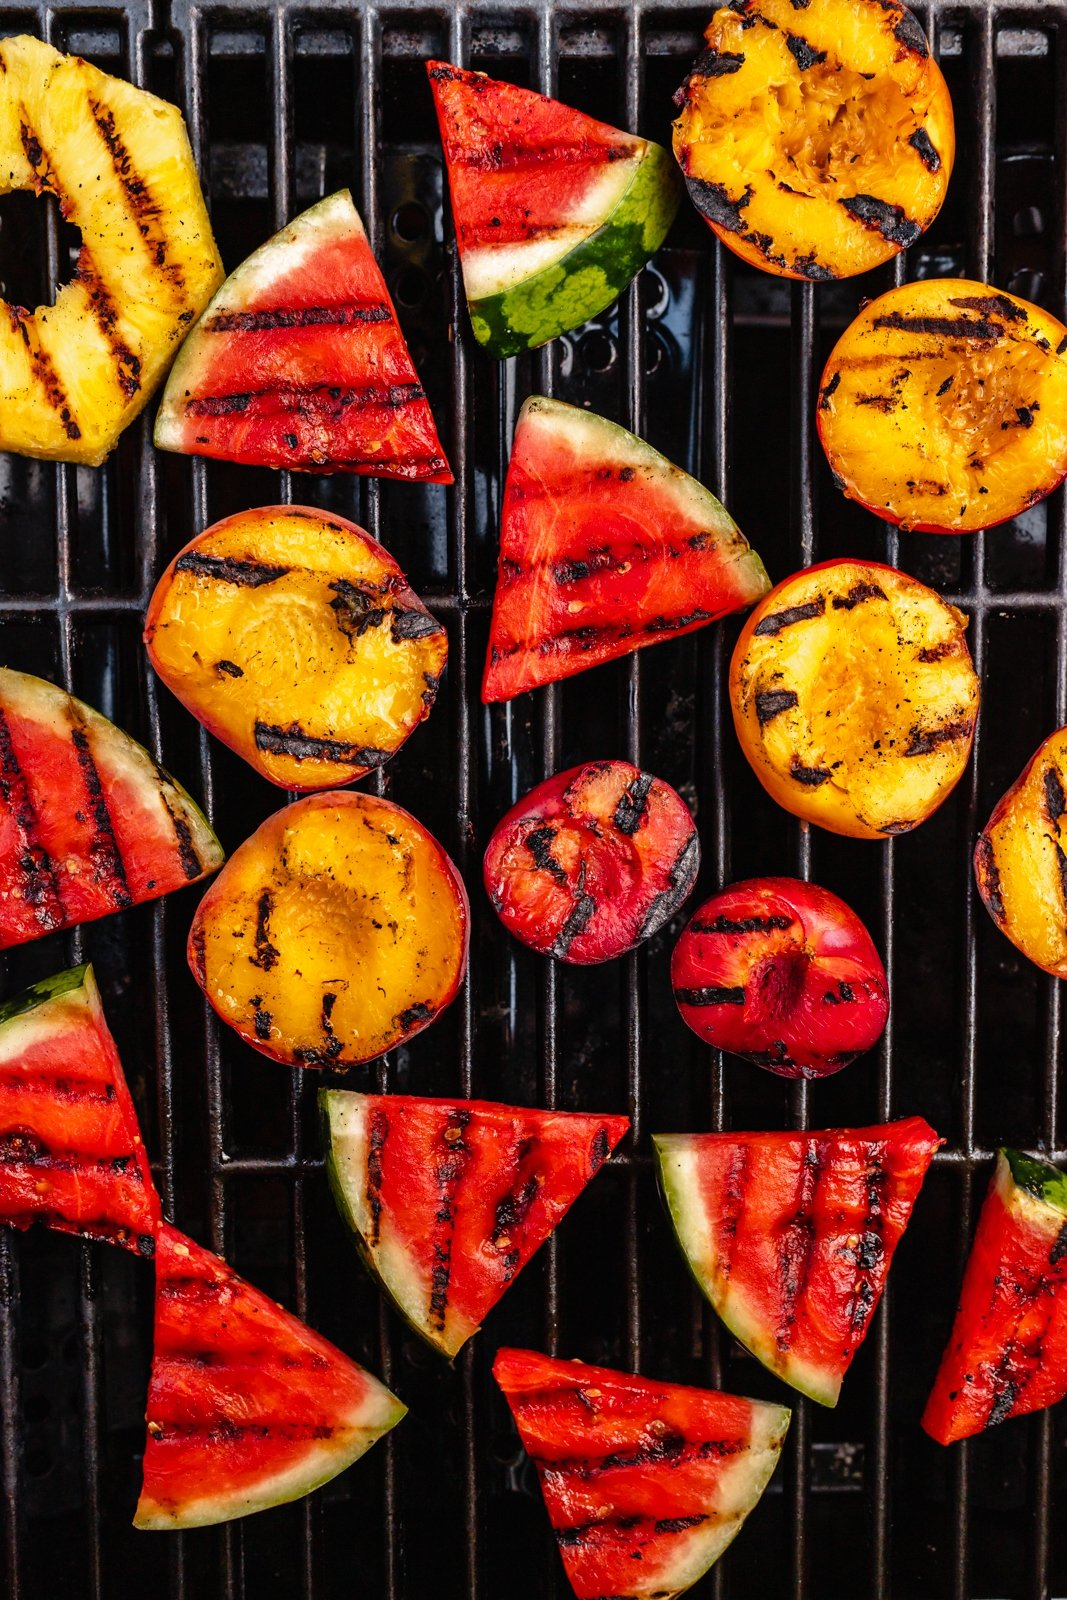 grilled fruit on a grill